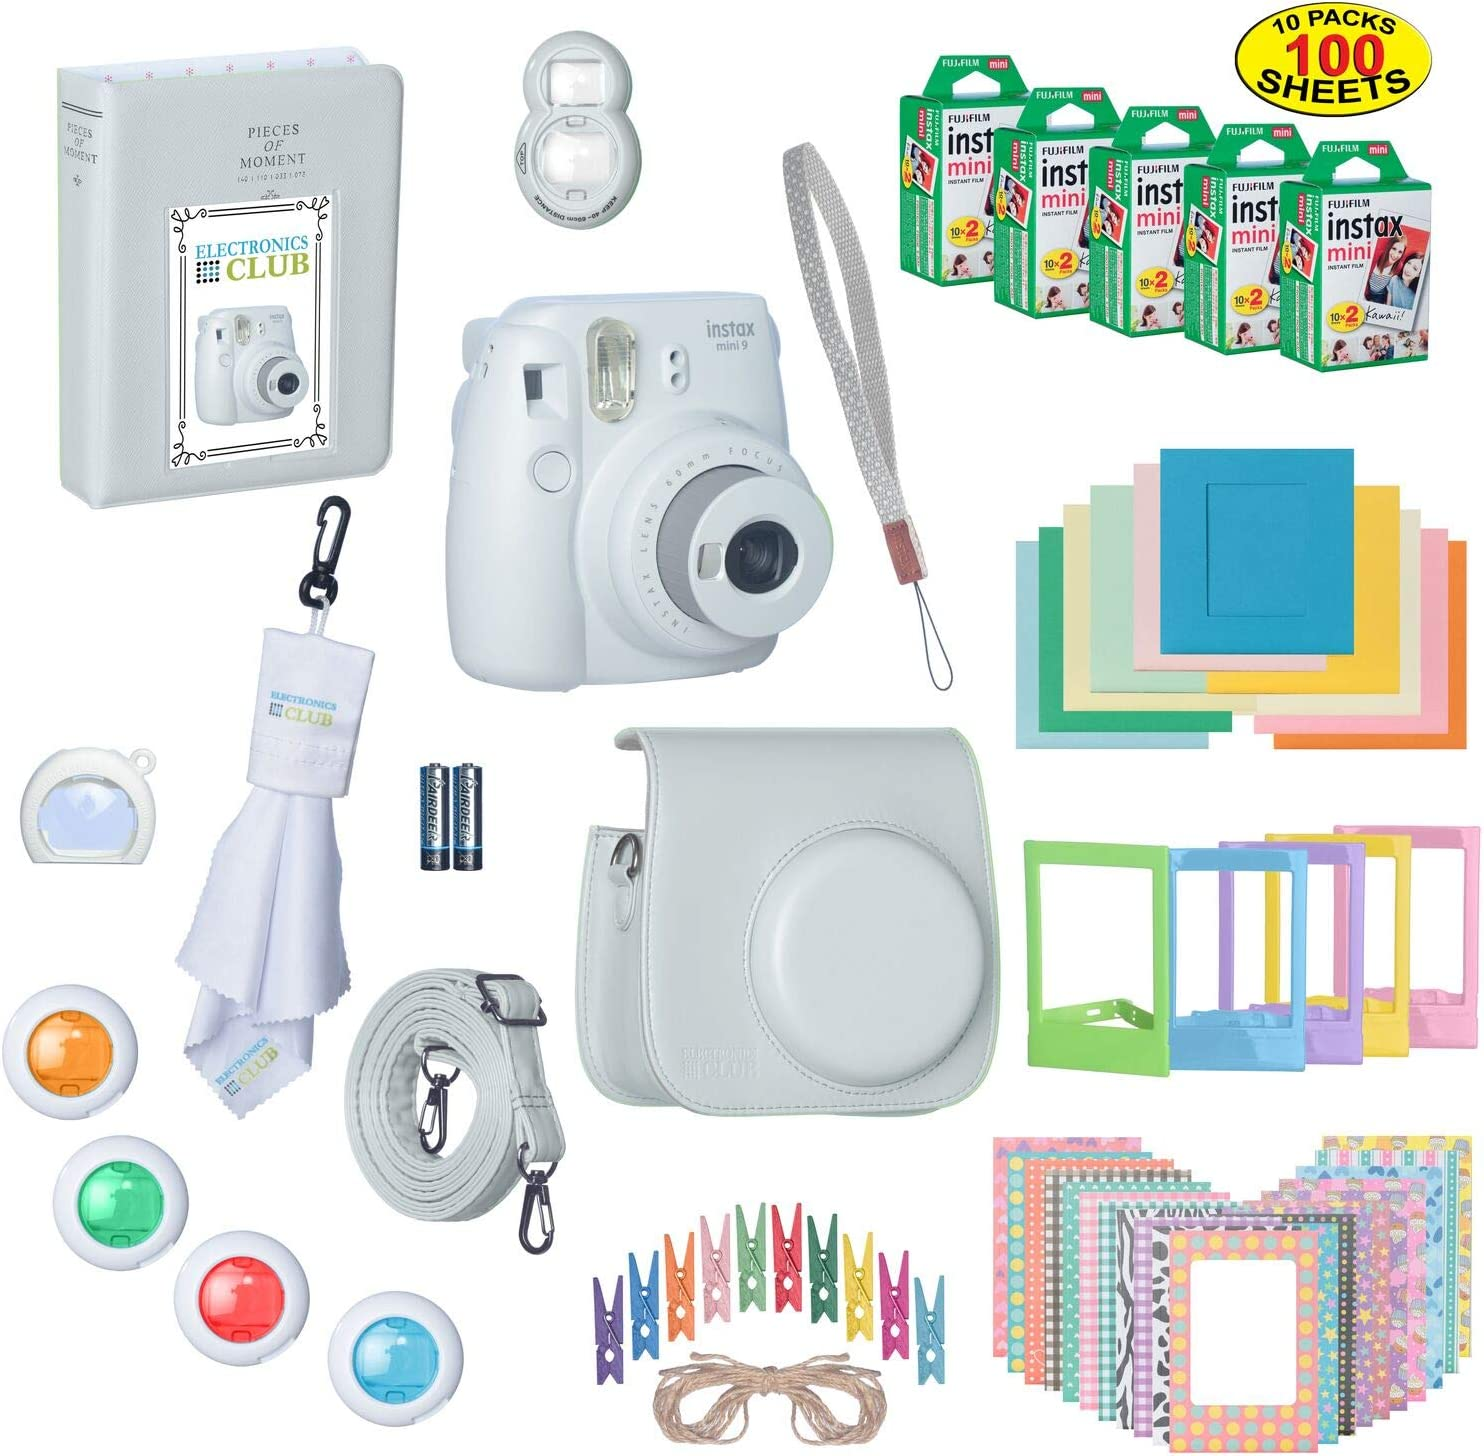 Fujifilm Instax Mini 9 Instant Film Camera Bundle with Over 15 Accessories | 100 Sheets of Instant Film + Mini Nine Leather Case + Photo Album + Lens Filters + Mini Frames + More